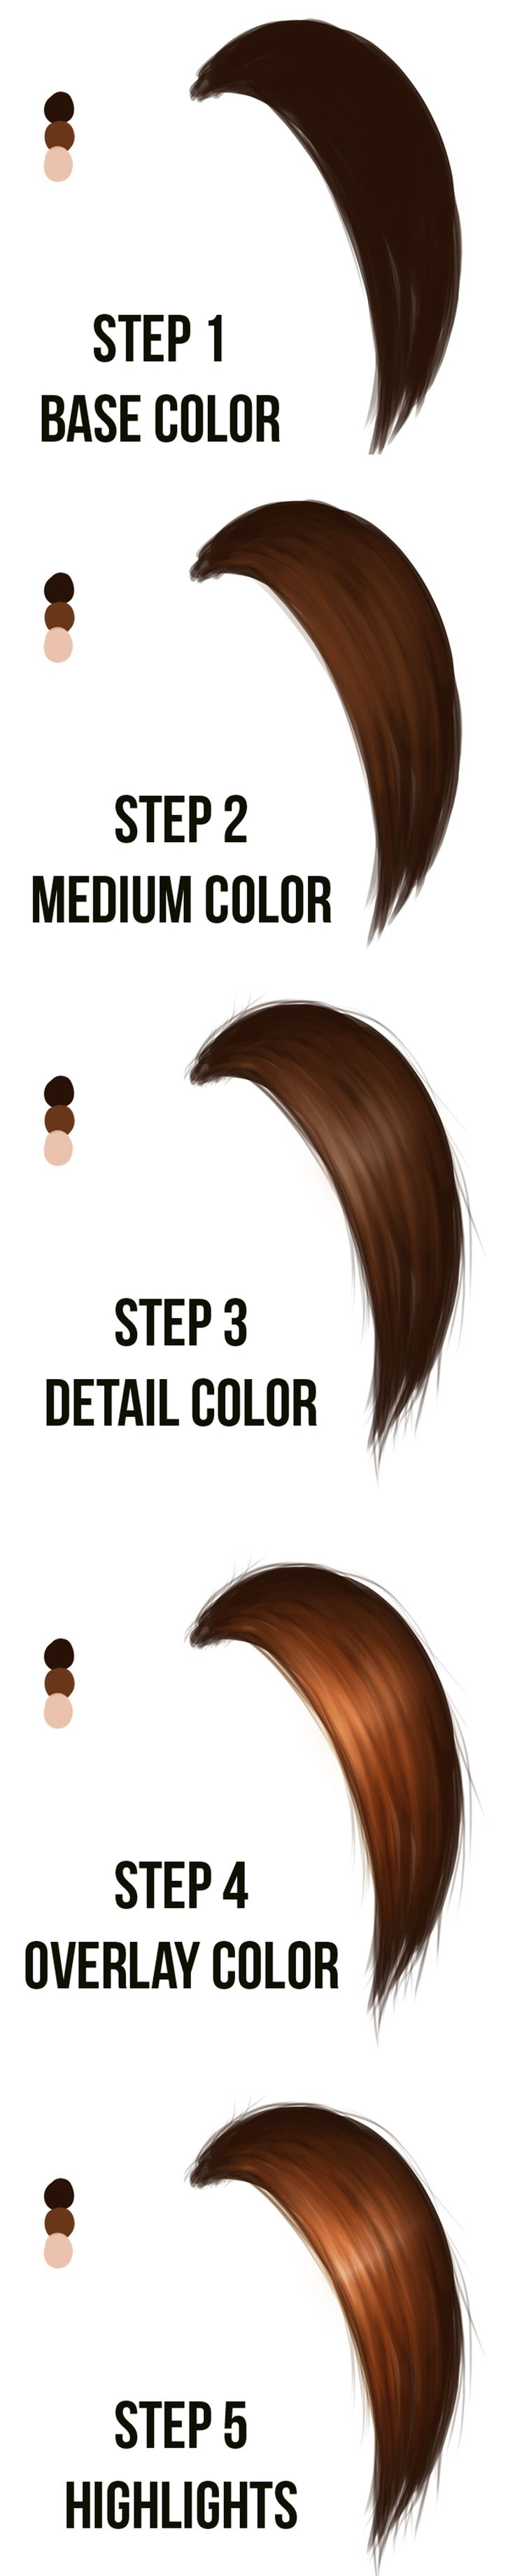 Tip: Drawing Realistic Hair | Concept Cookie via cgpin.com